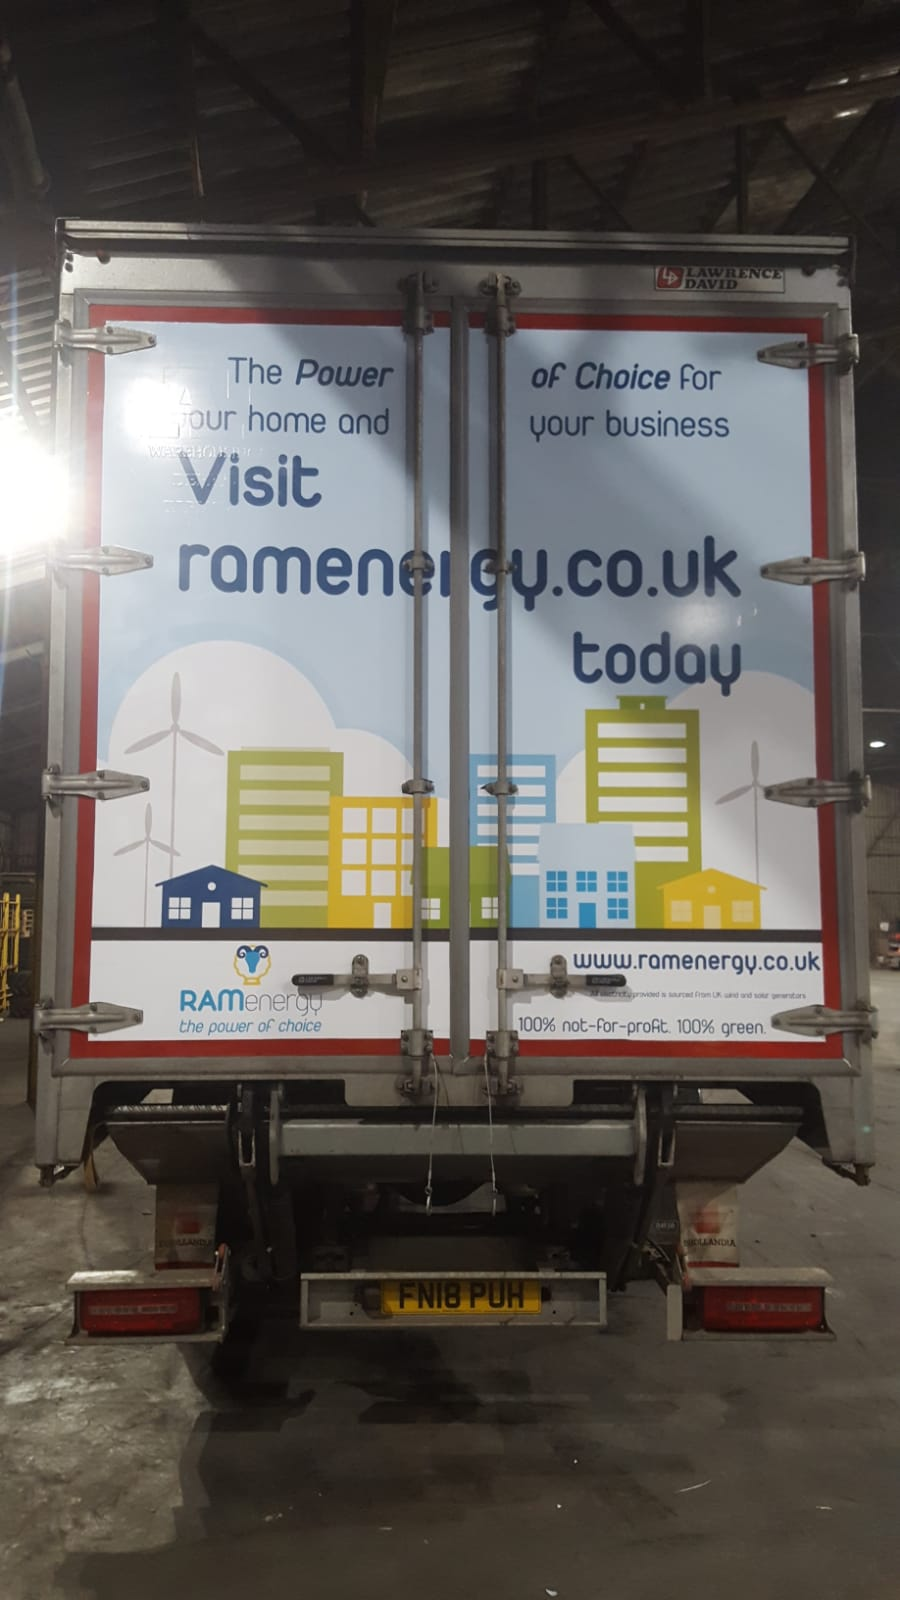 First Look at Ram Energy's truck advertising campaign